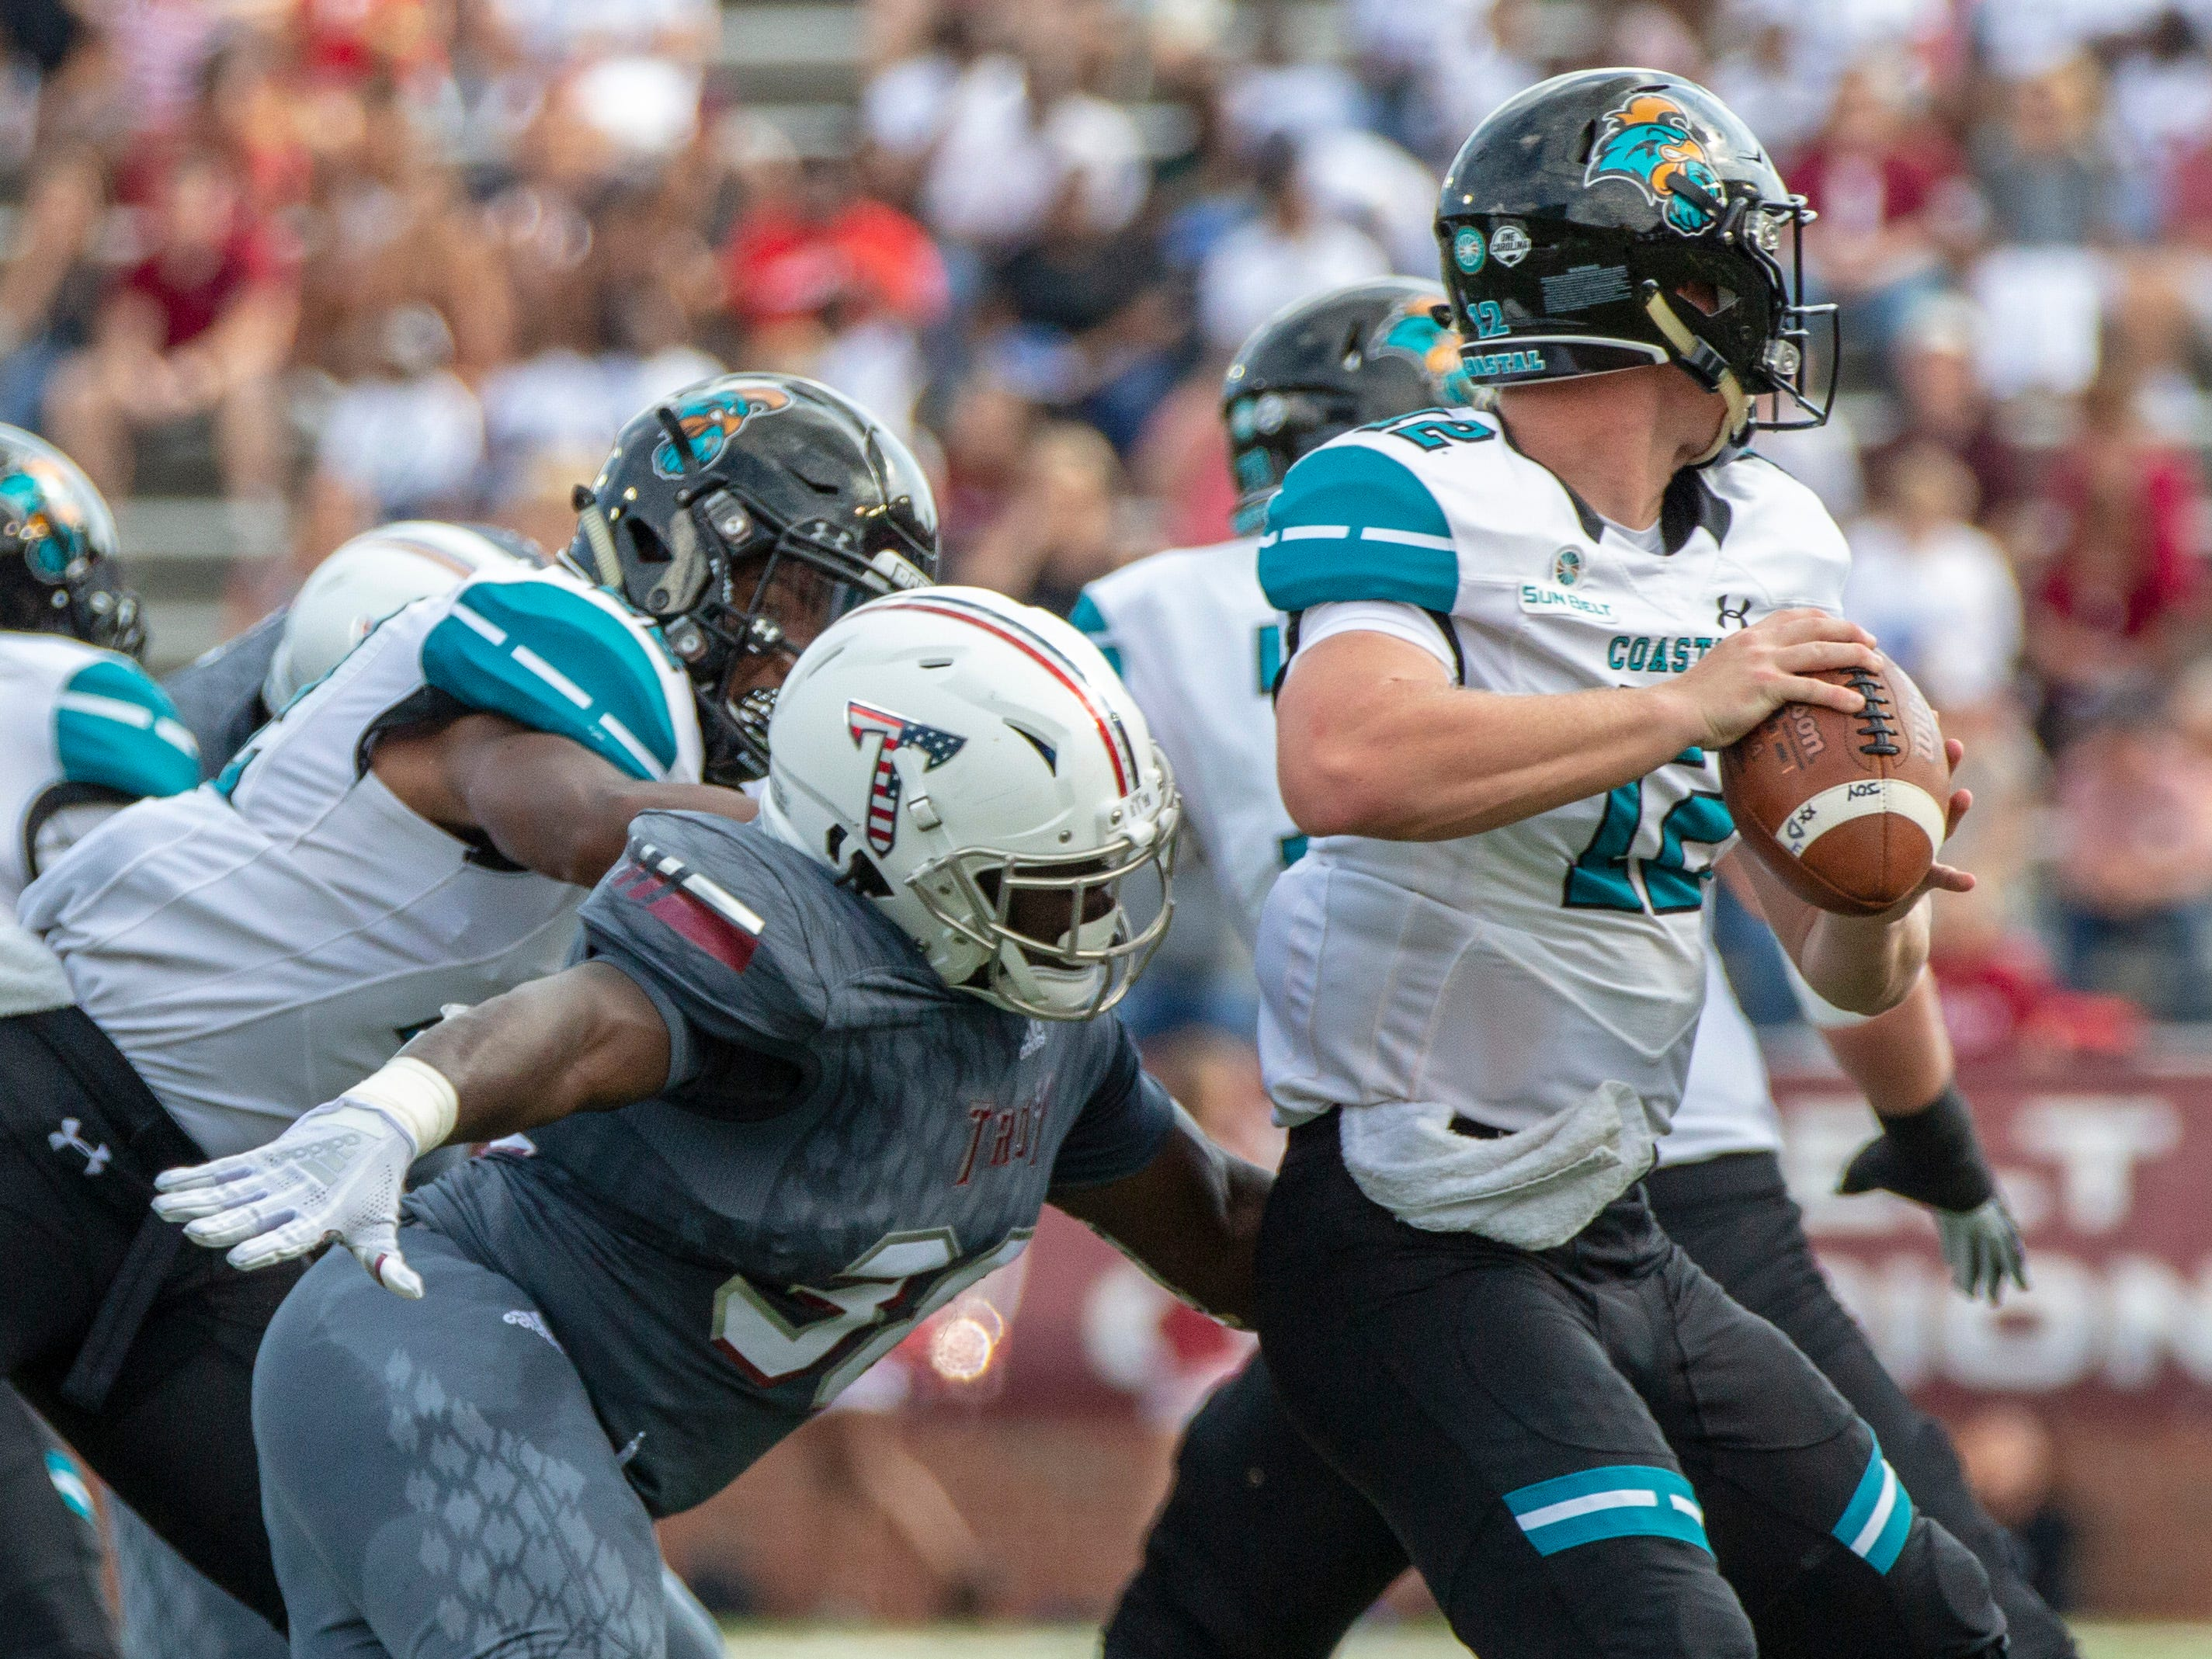 Troy's Jeremiah Jones sneaks up on an unsuspecting Bryce Carpenter for a tackle.